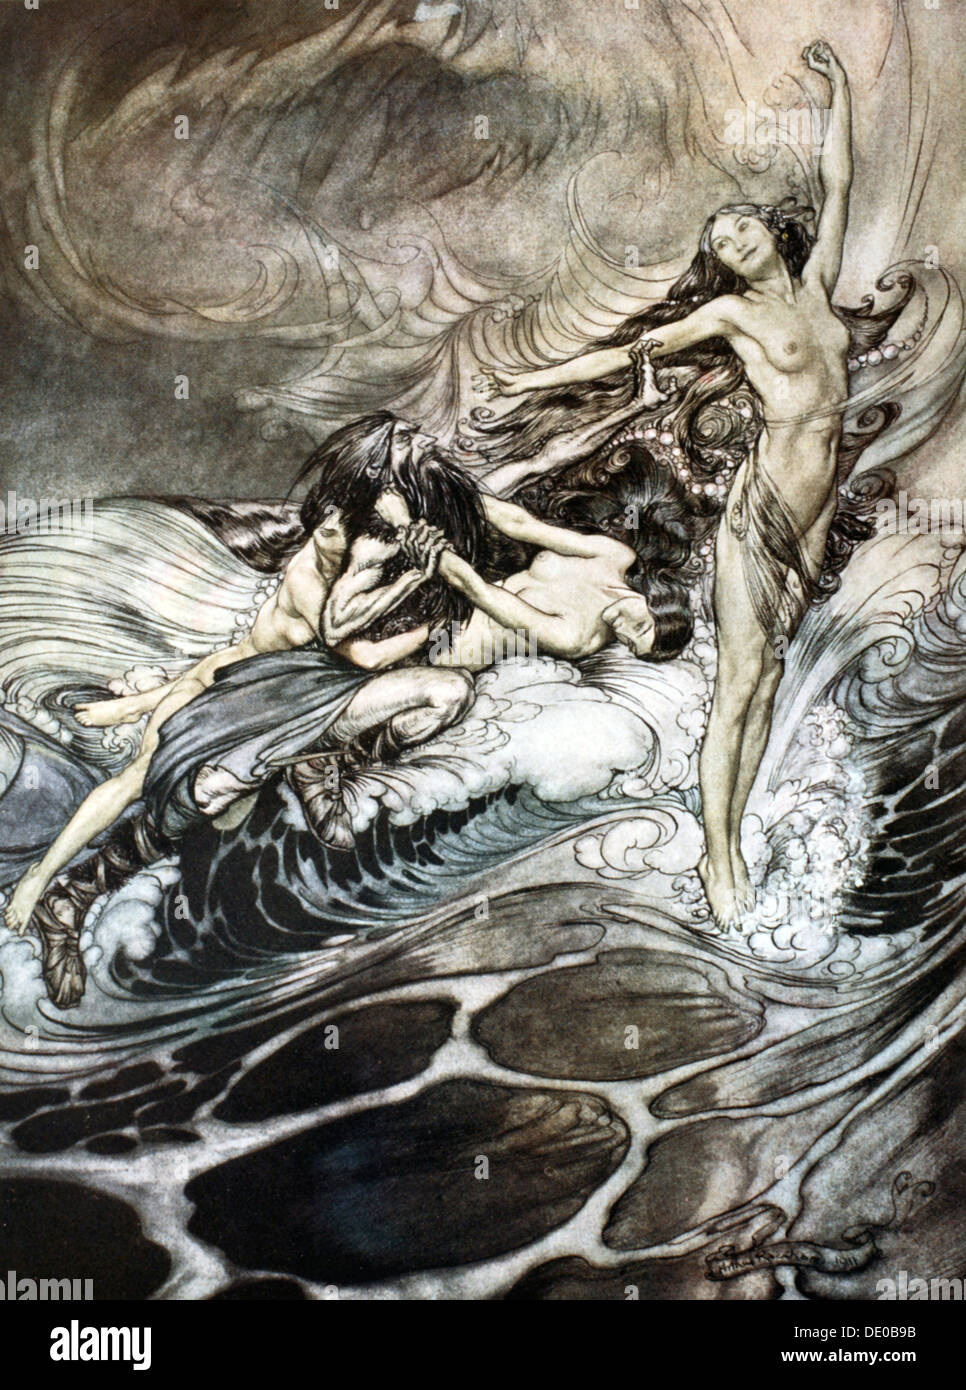 'The Rhine Maidens obtain possession of the ring and bear it off in triumph', 1924.  Artist: Arthur Rackham - Stock Image